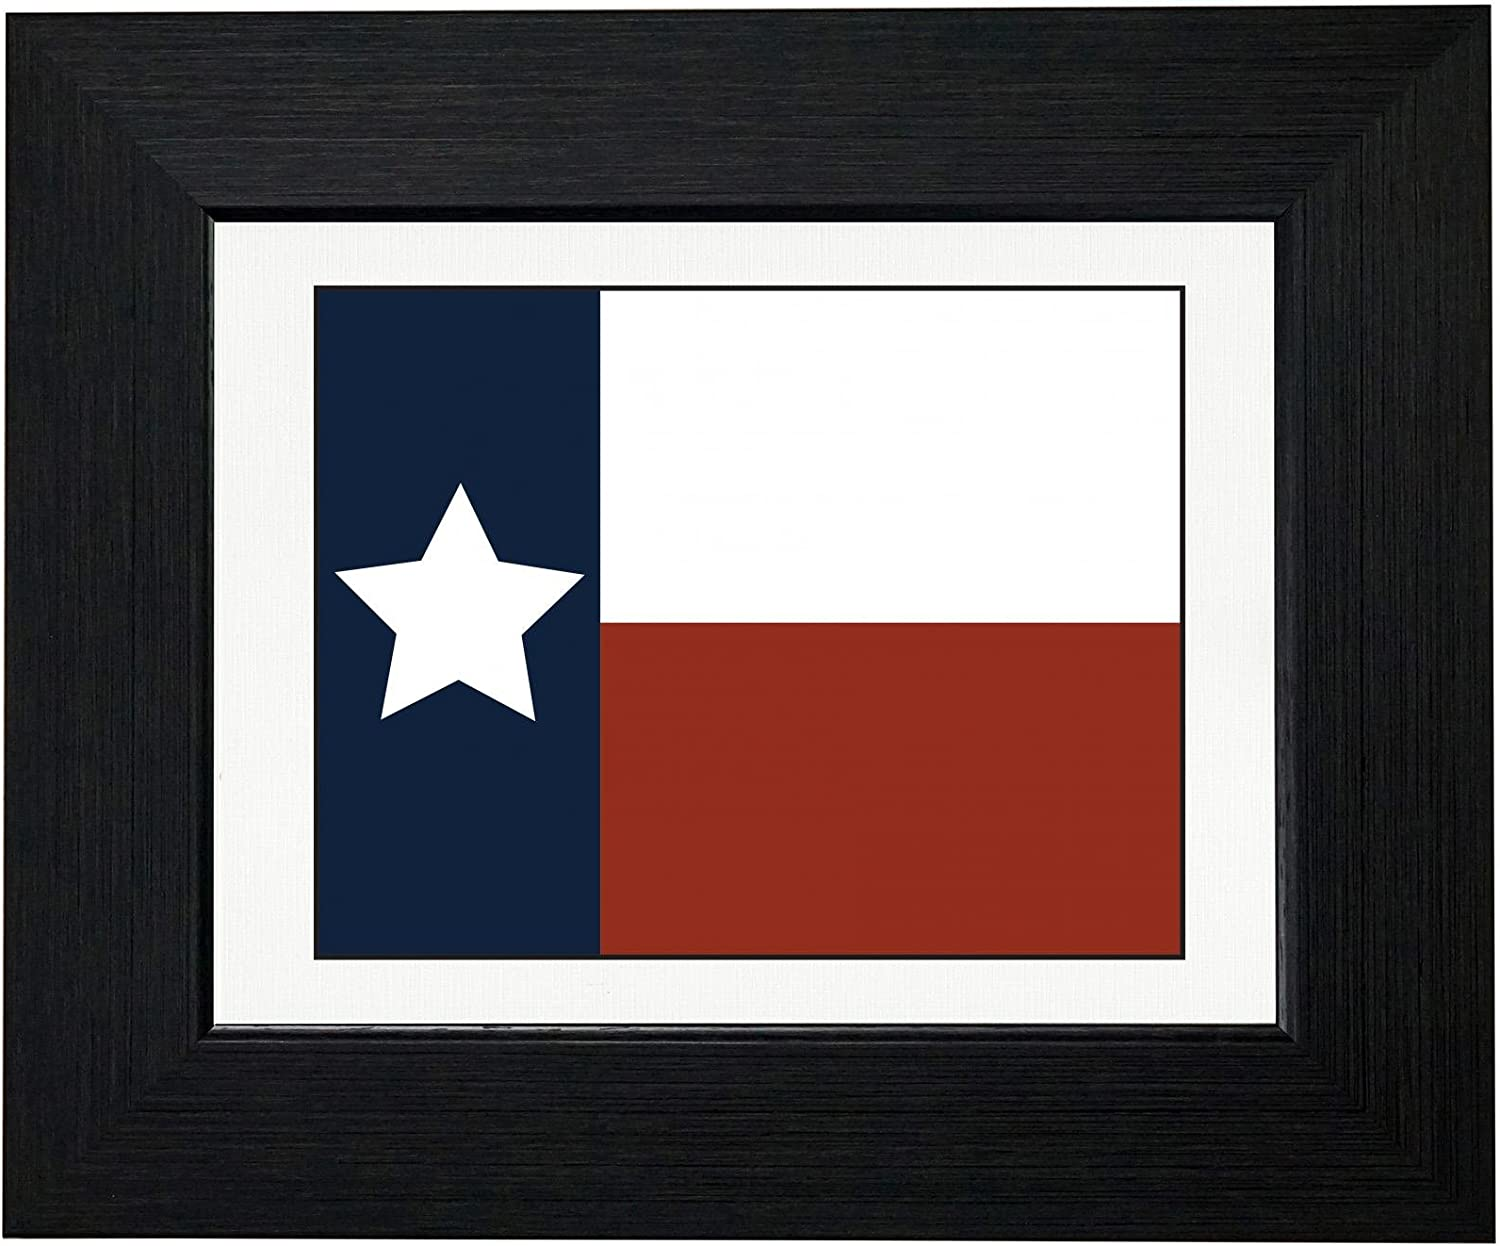 Royal Prints Simple Colorful Texas State Flag and Colors Framed Print Poster Wall or Desk Mount Options